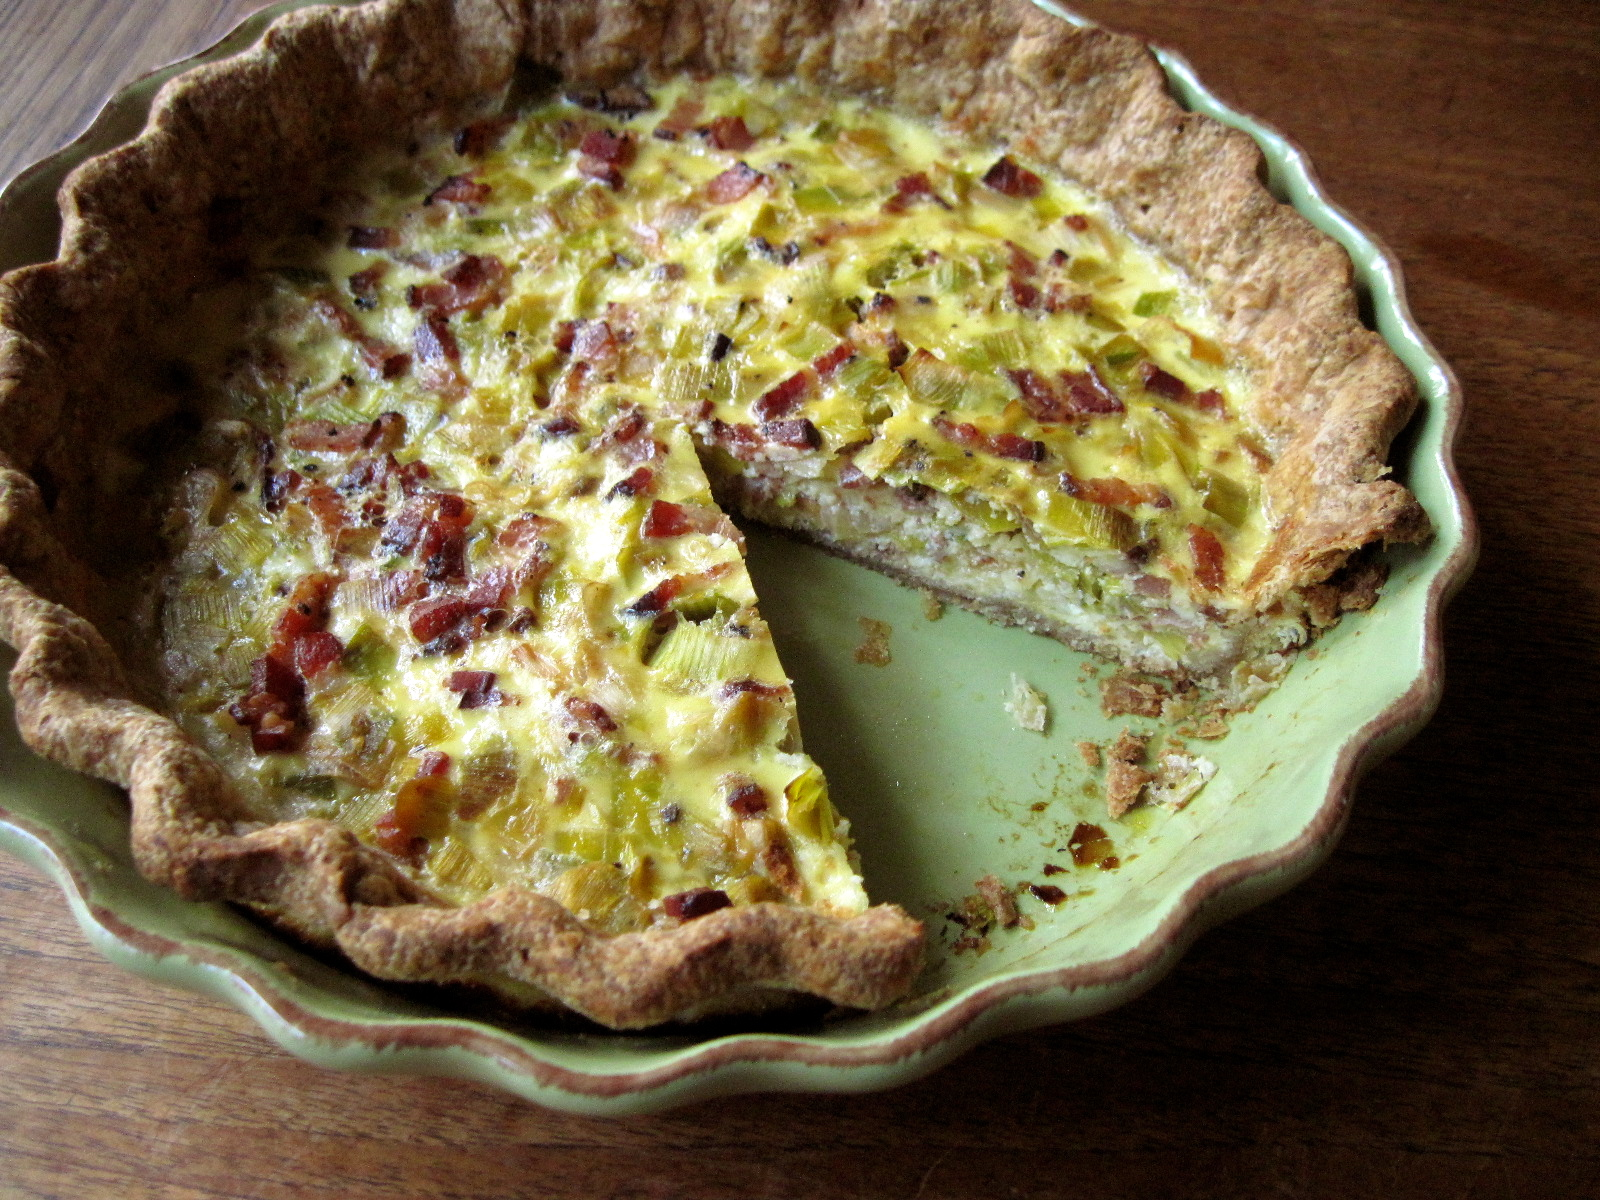 Leek & Bcaon Quiche with Whole Grain Crust